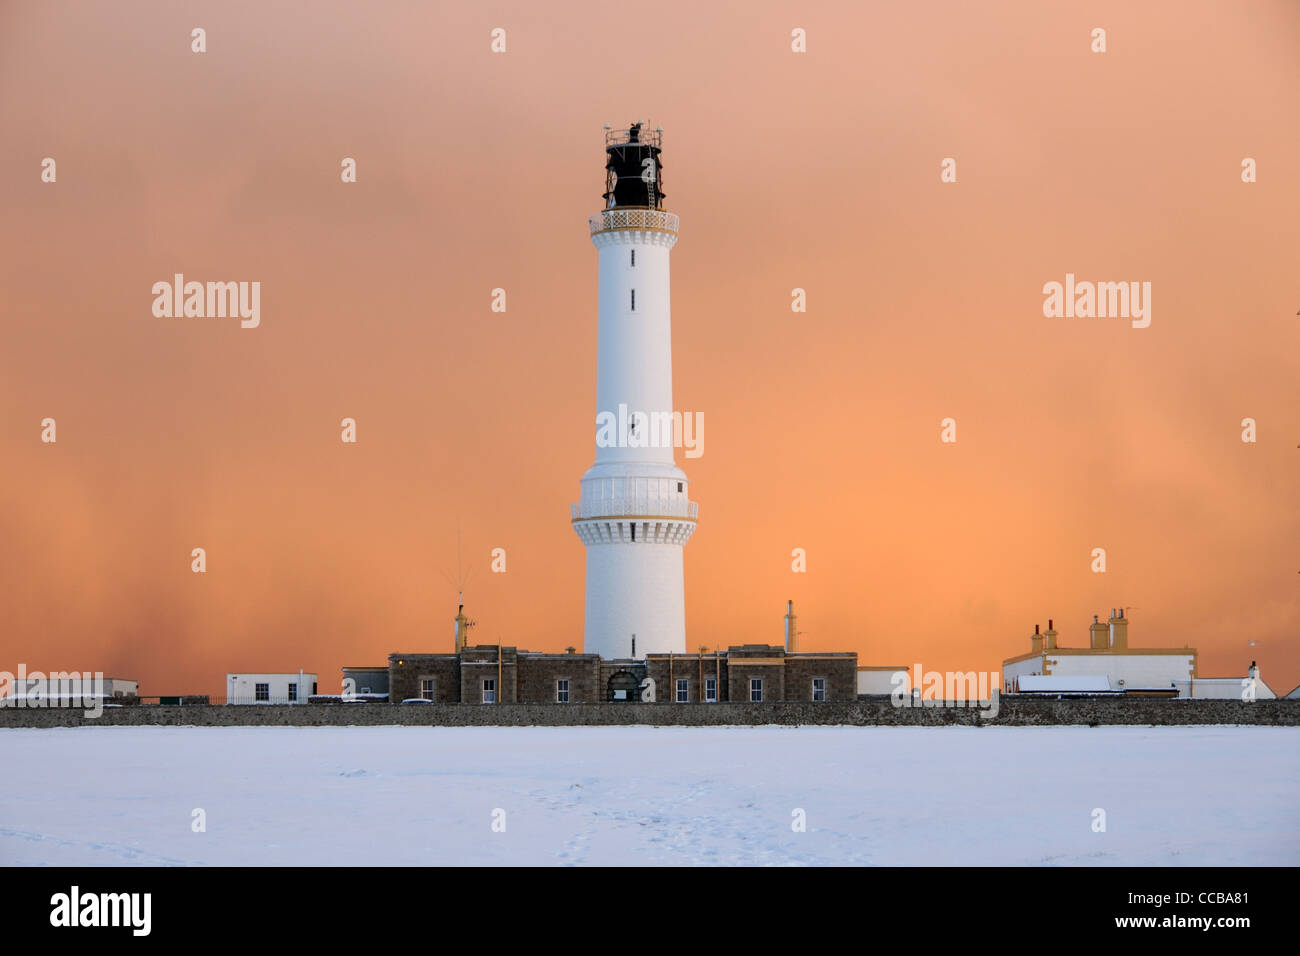 Girdle Ness Lighthouse in the snow, Aberdeen - Stock Image